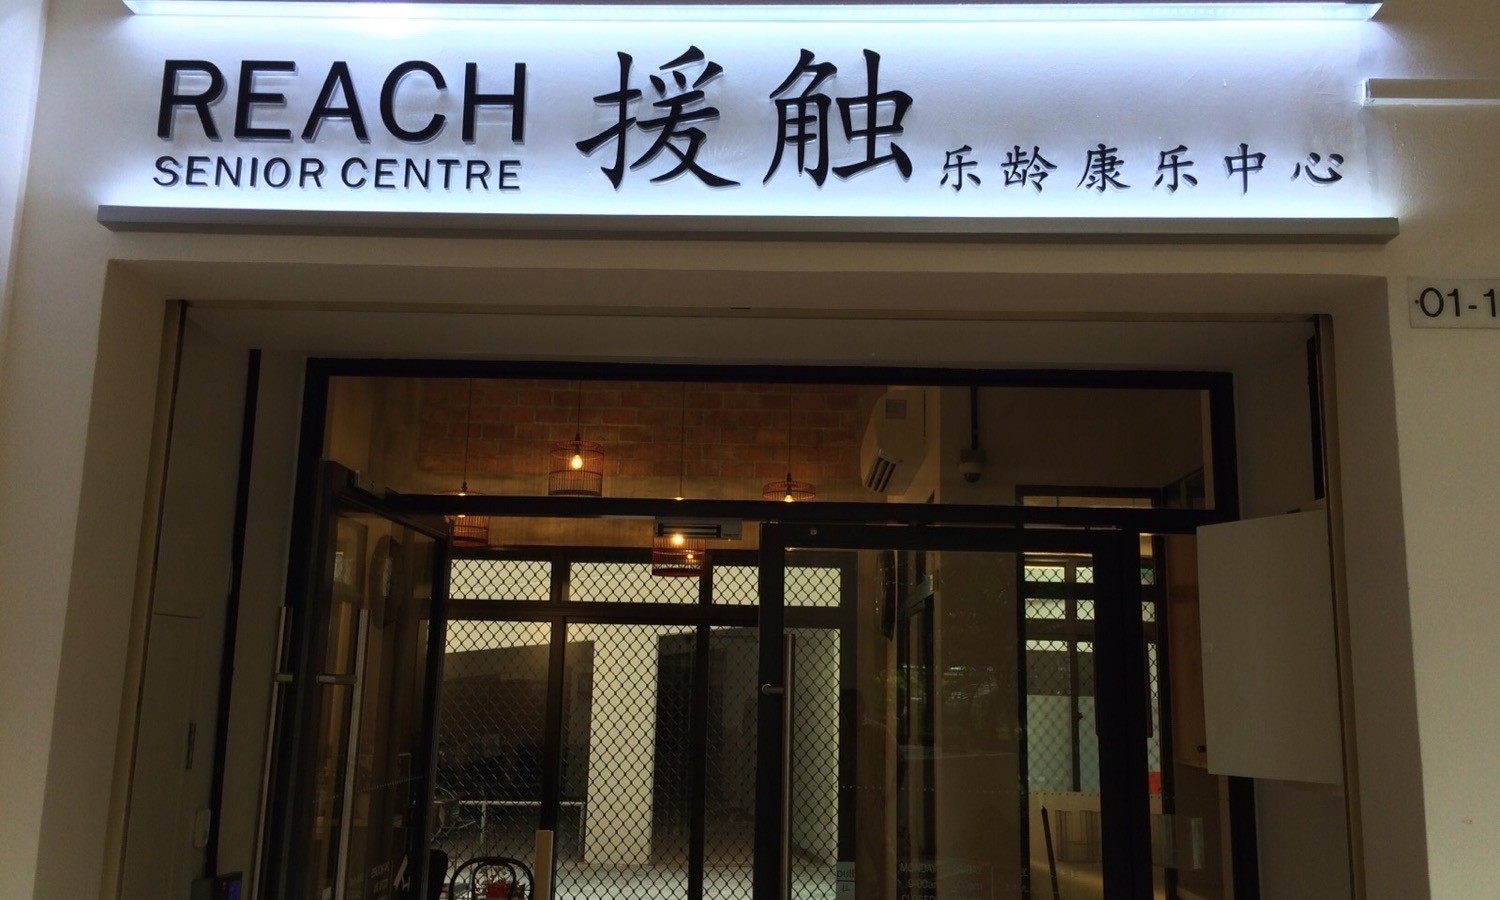 REACH Senior Centre